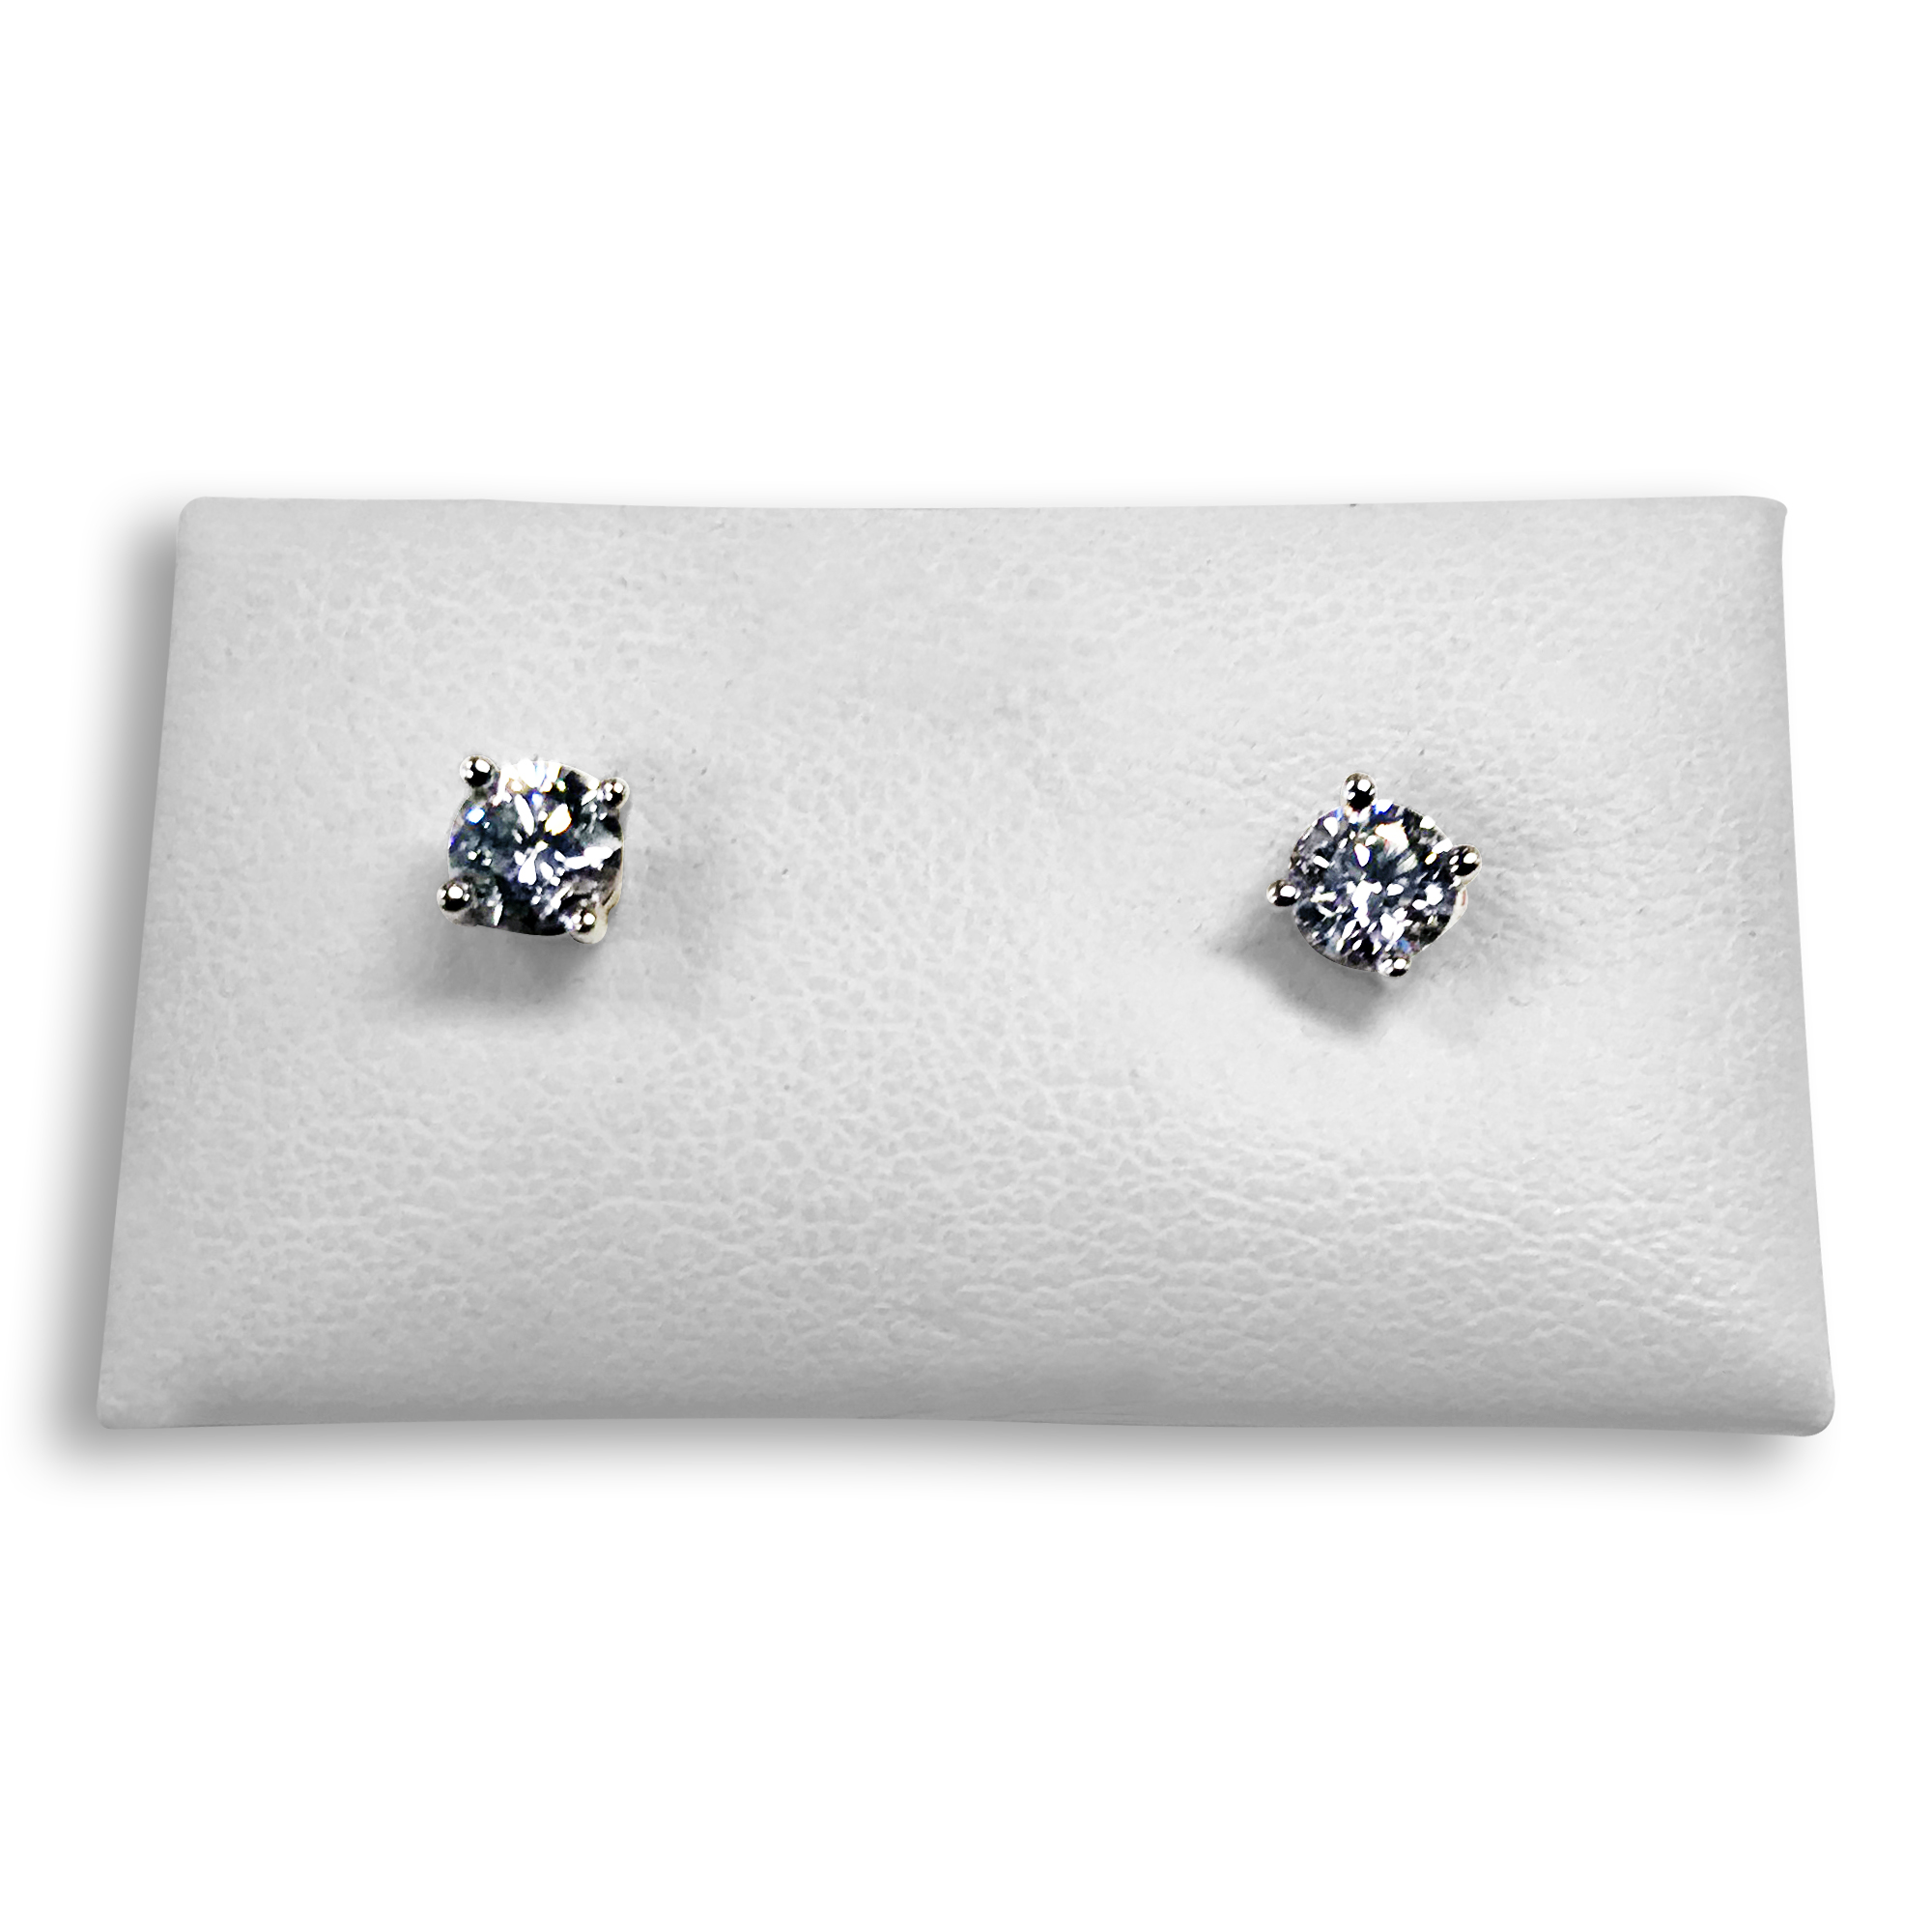 hei black white cttw jewellery wid prod qlt stud diamond earrings and p